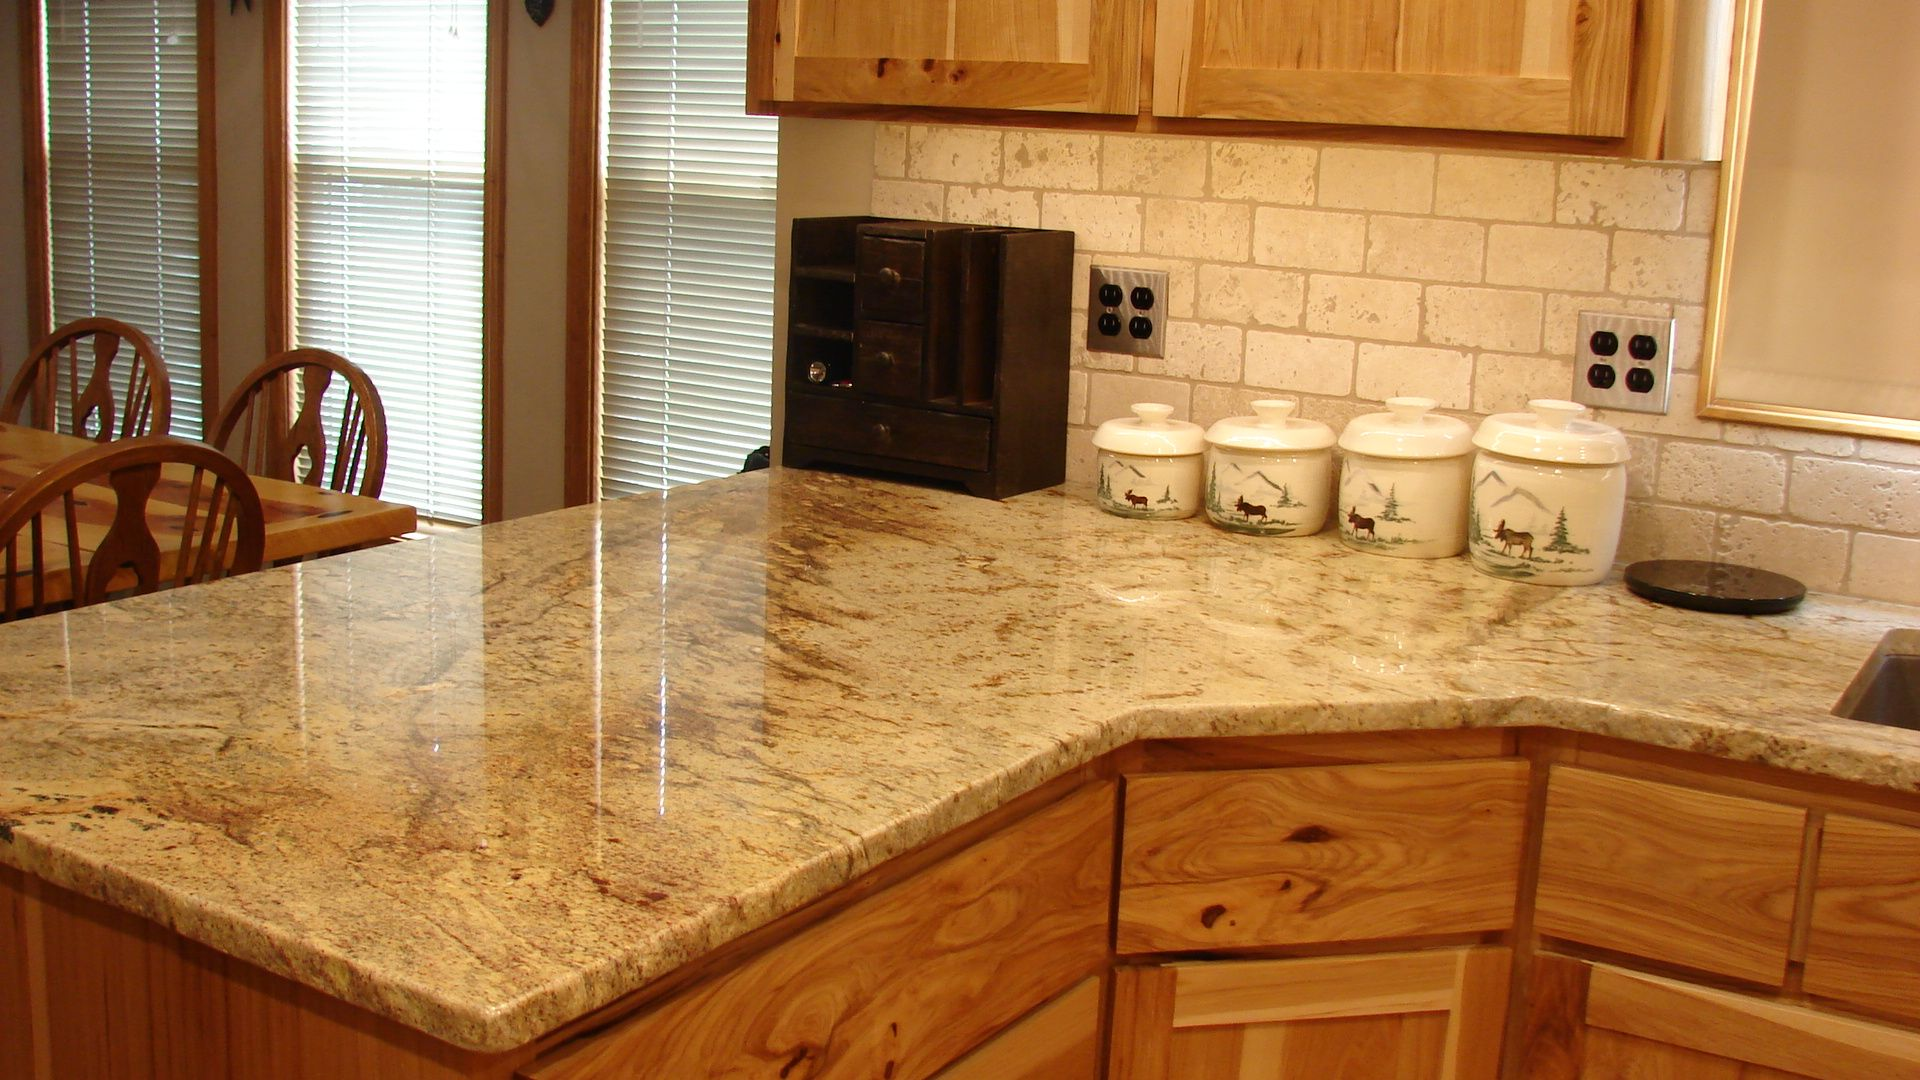 Granite kitchen counter top done in 3cm Typhoon Bordeaux with